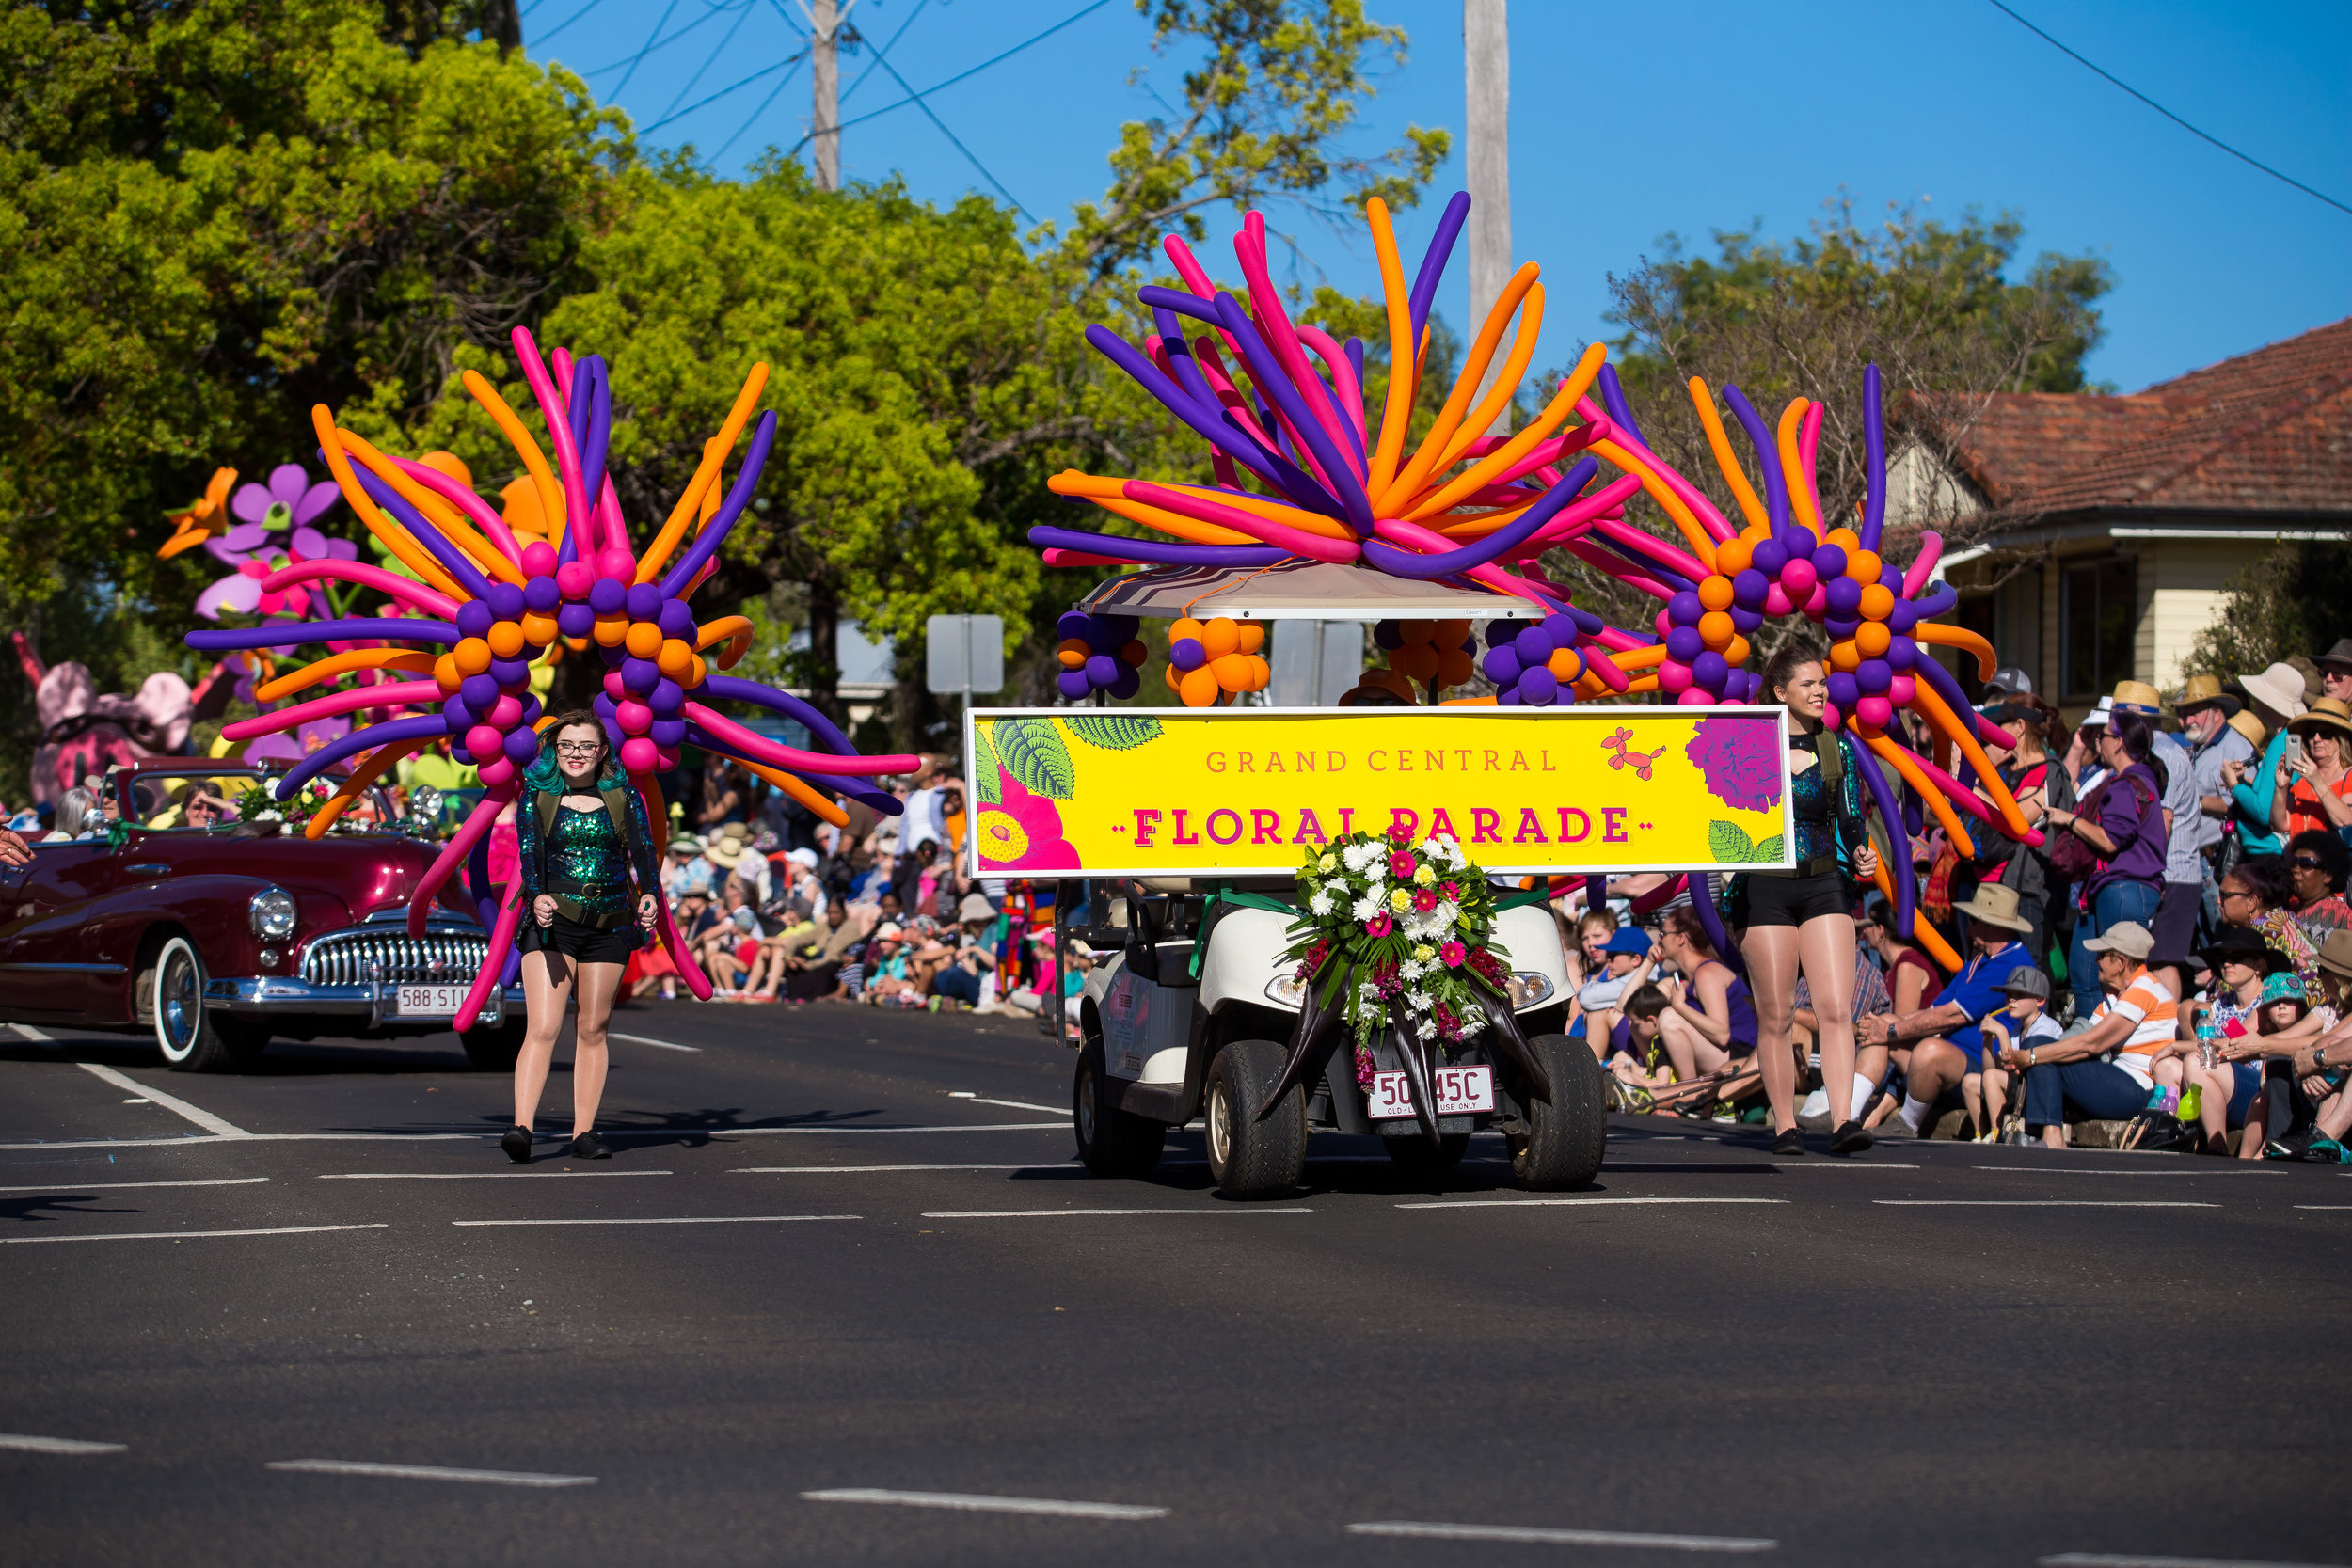 Grand Central Floral Parade Toowoomba Carnival of Flowers